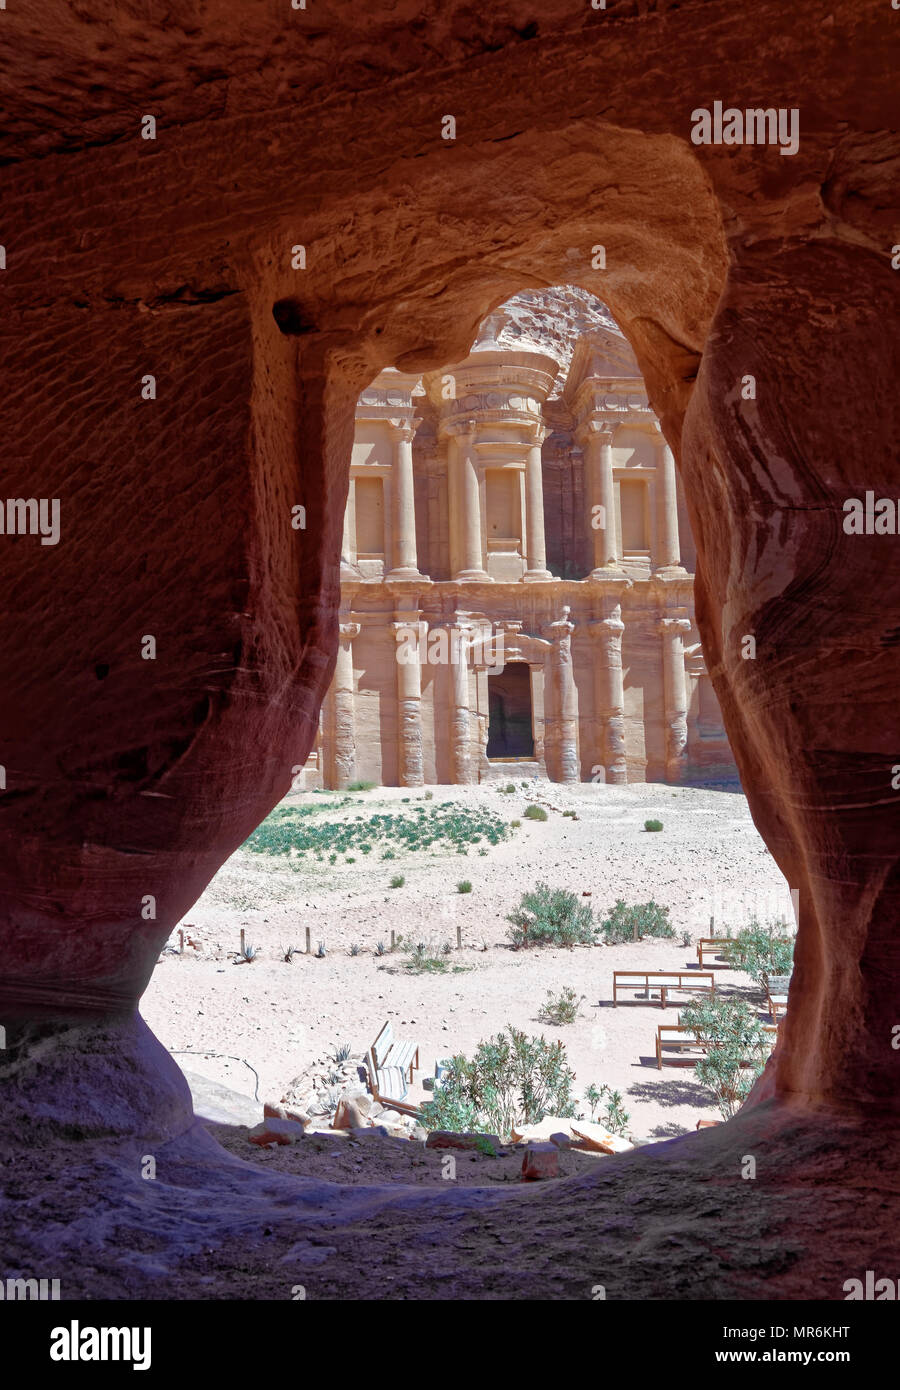 View through the rock window of a storage room in Petra to the monastery Al-deir, Jordan - Stock Image